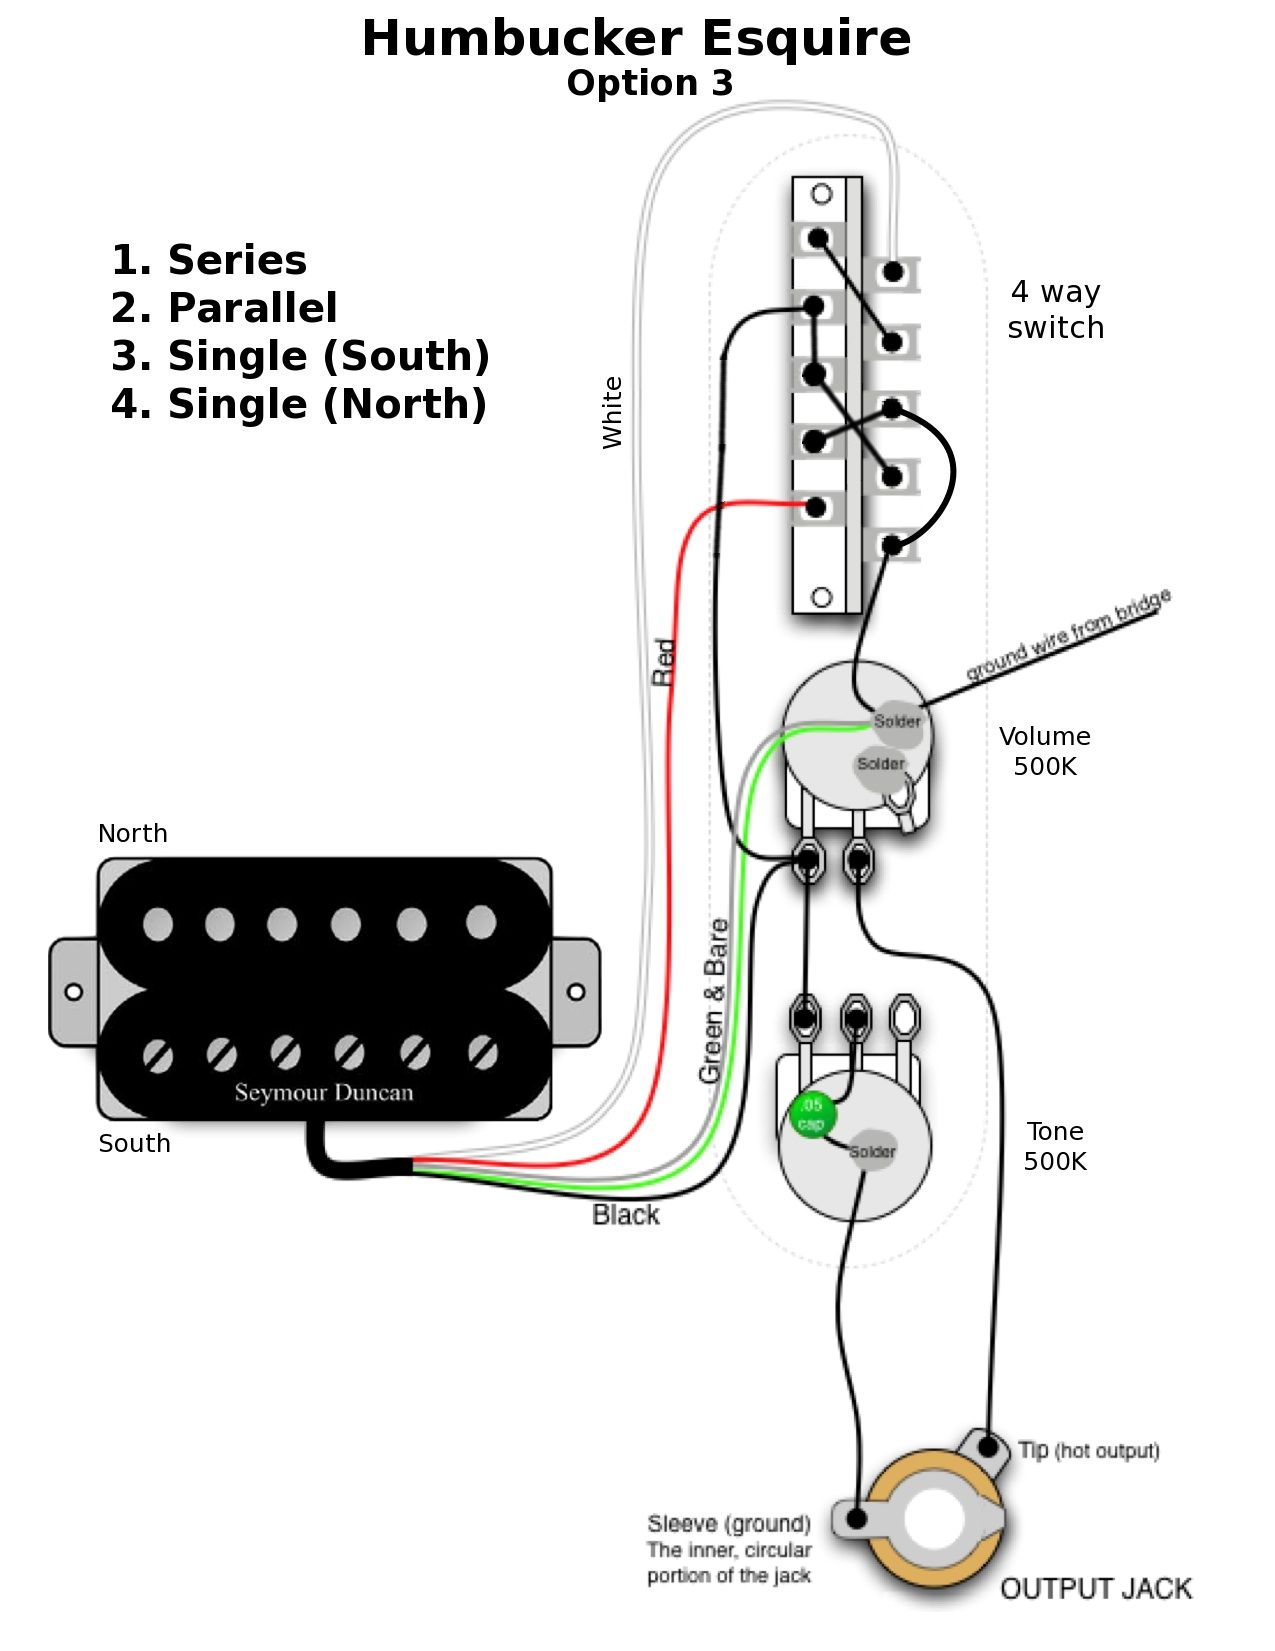 Esquire Wiring Diagram Humbucker : Esquire wire diagram wiring images